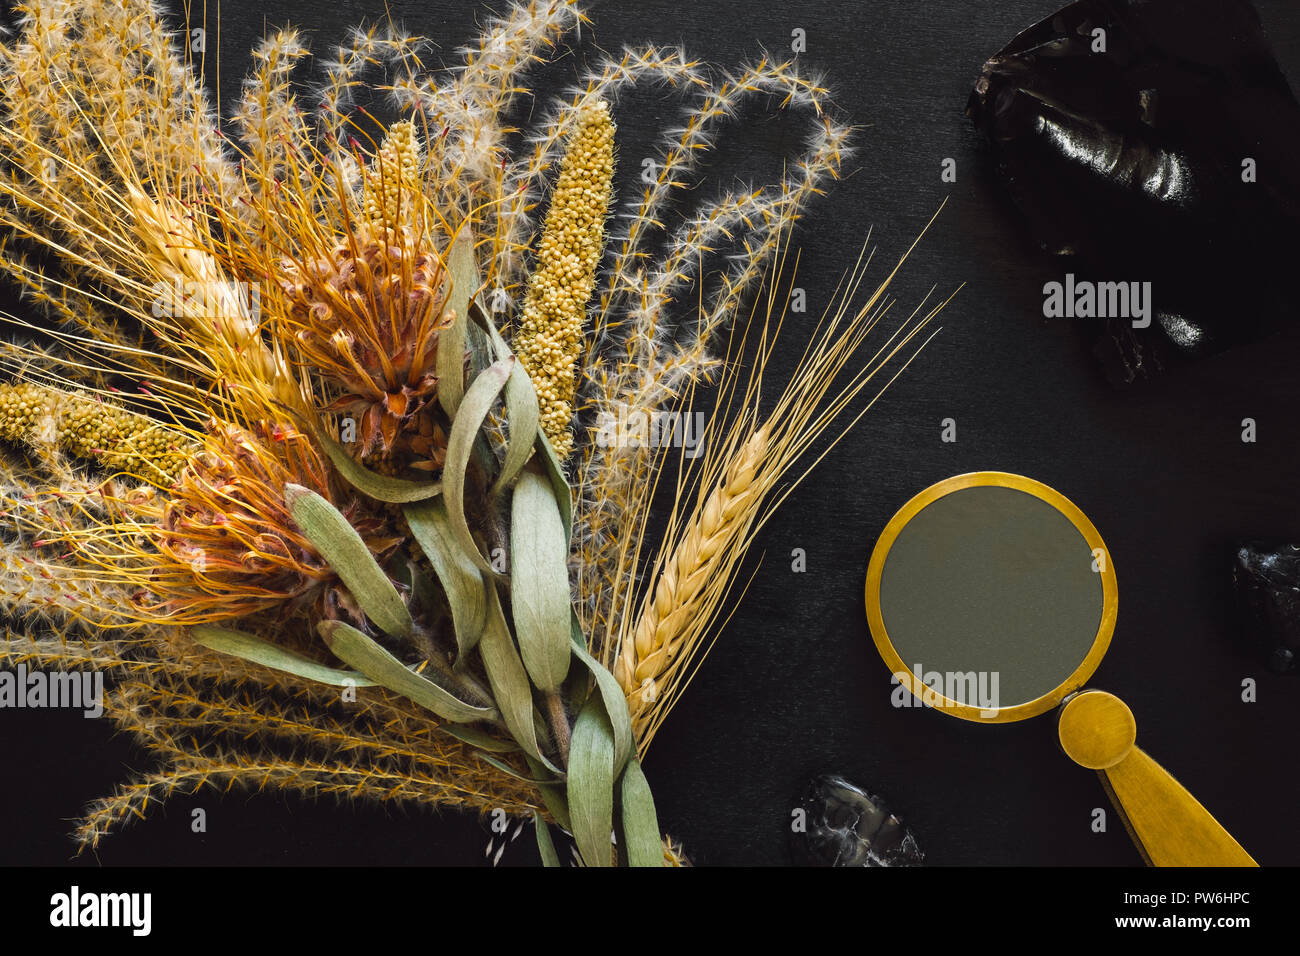 Obsidian Slice with Dried Feather Grass and Flowers and Magnifying Glass on Black Table - Stock Image